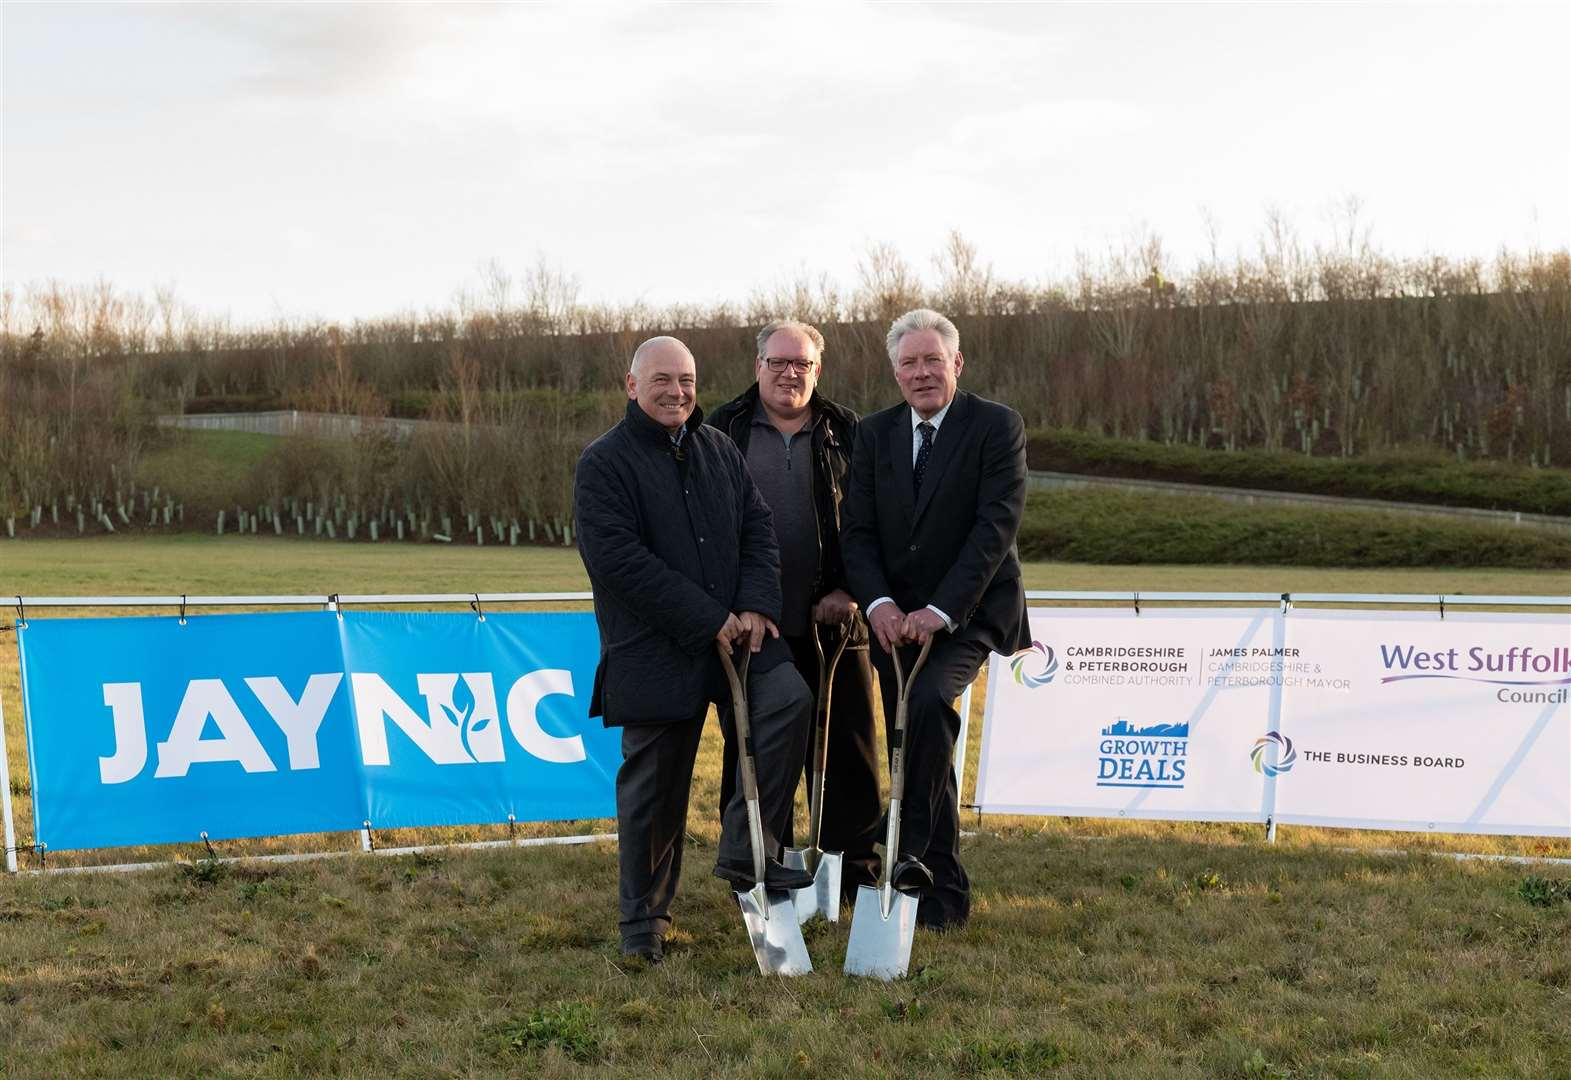 Work gets underway on new innovation and business centre